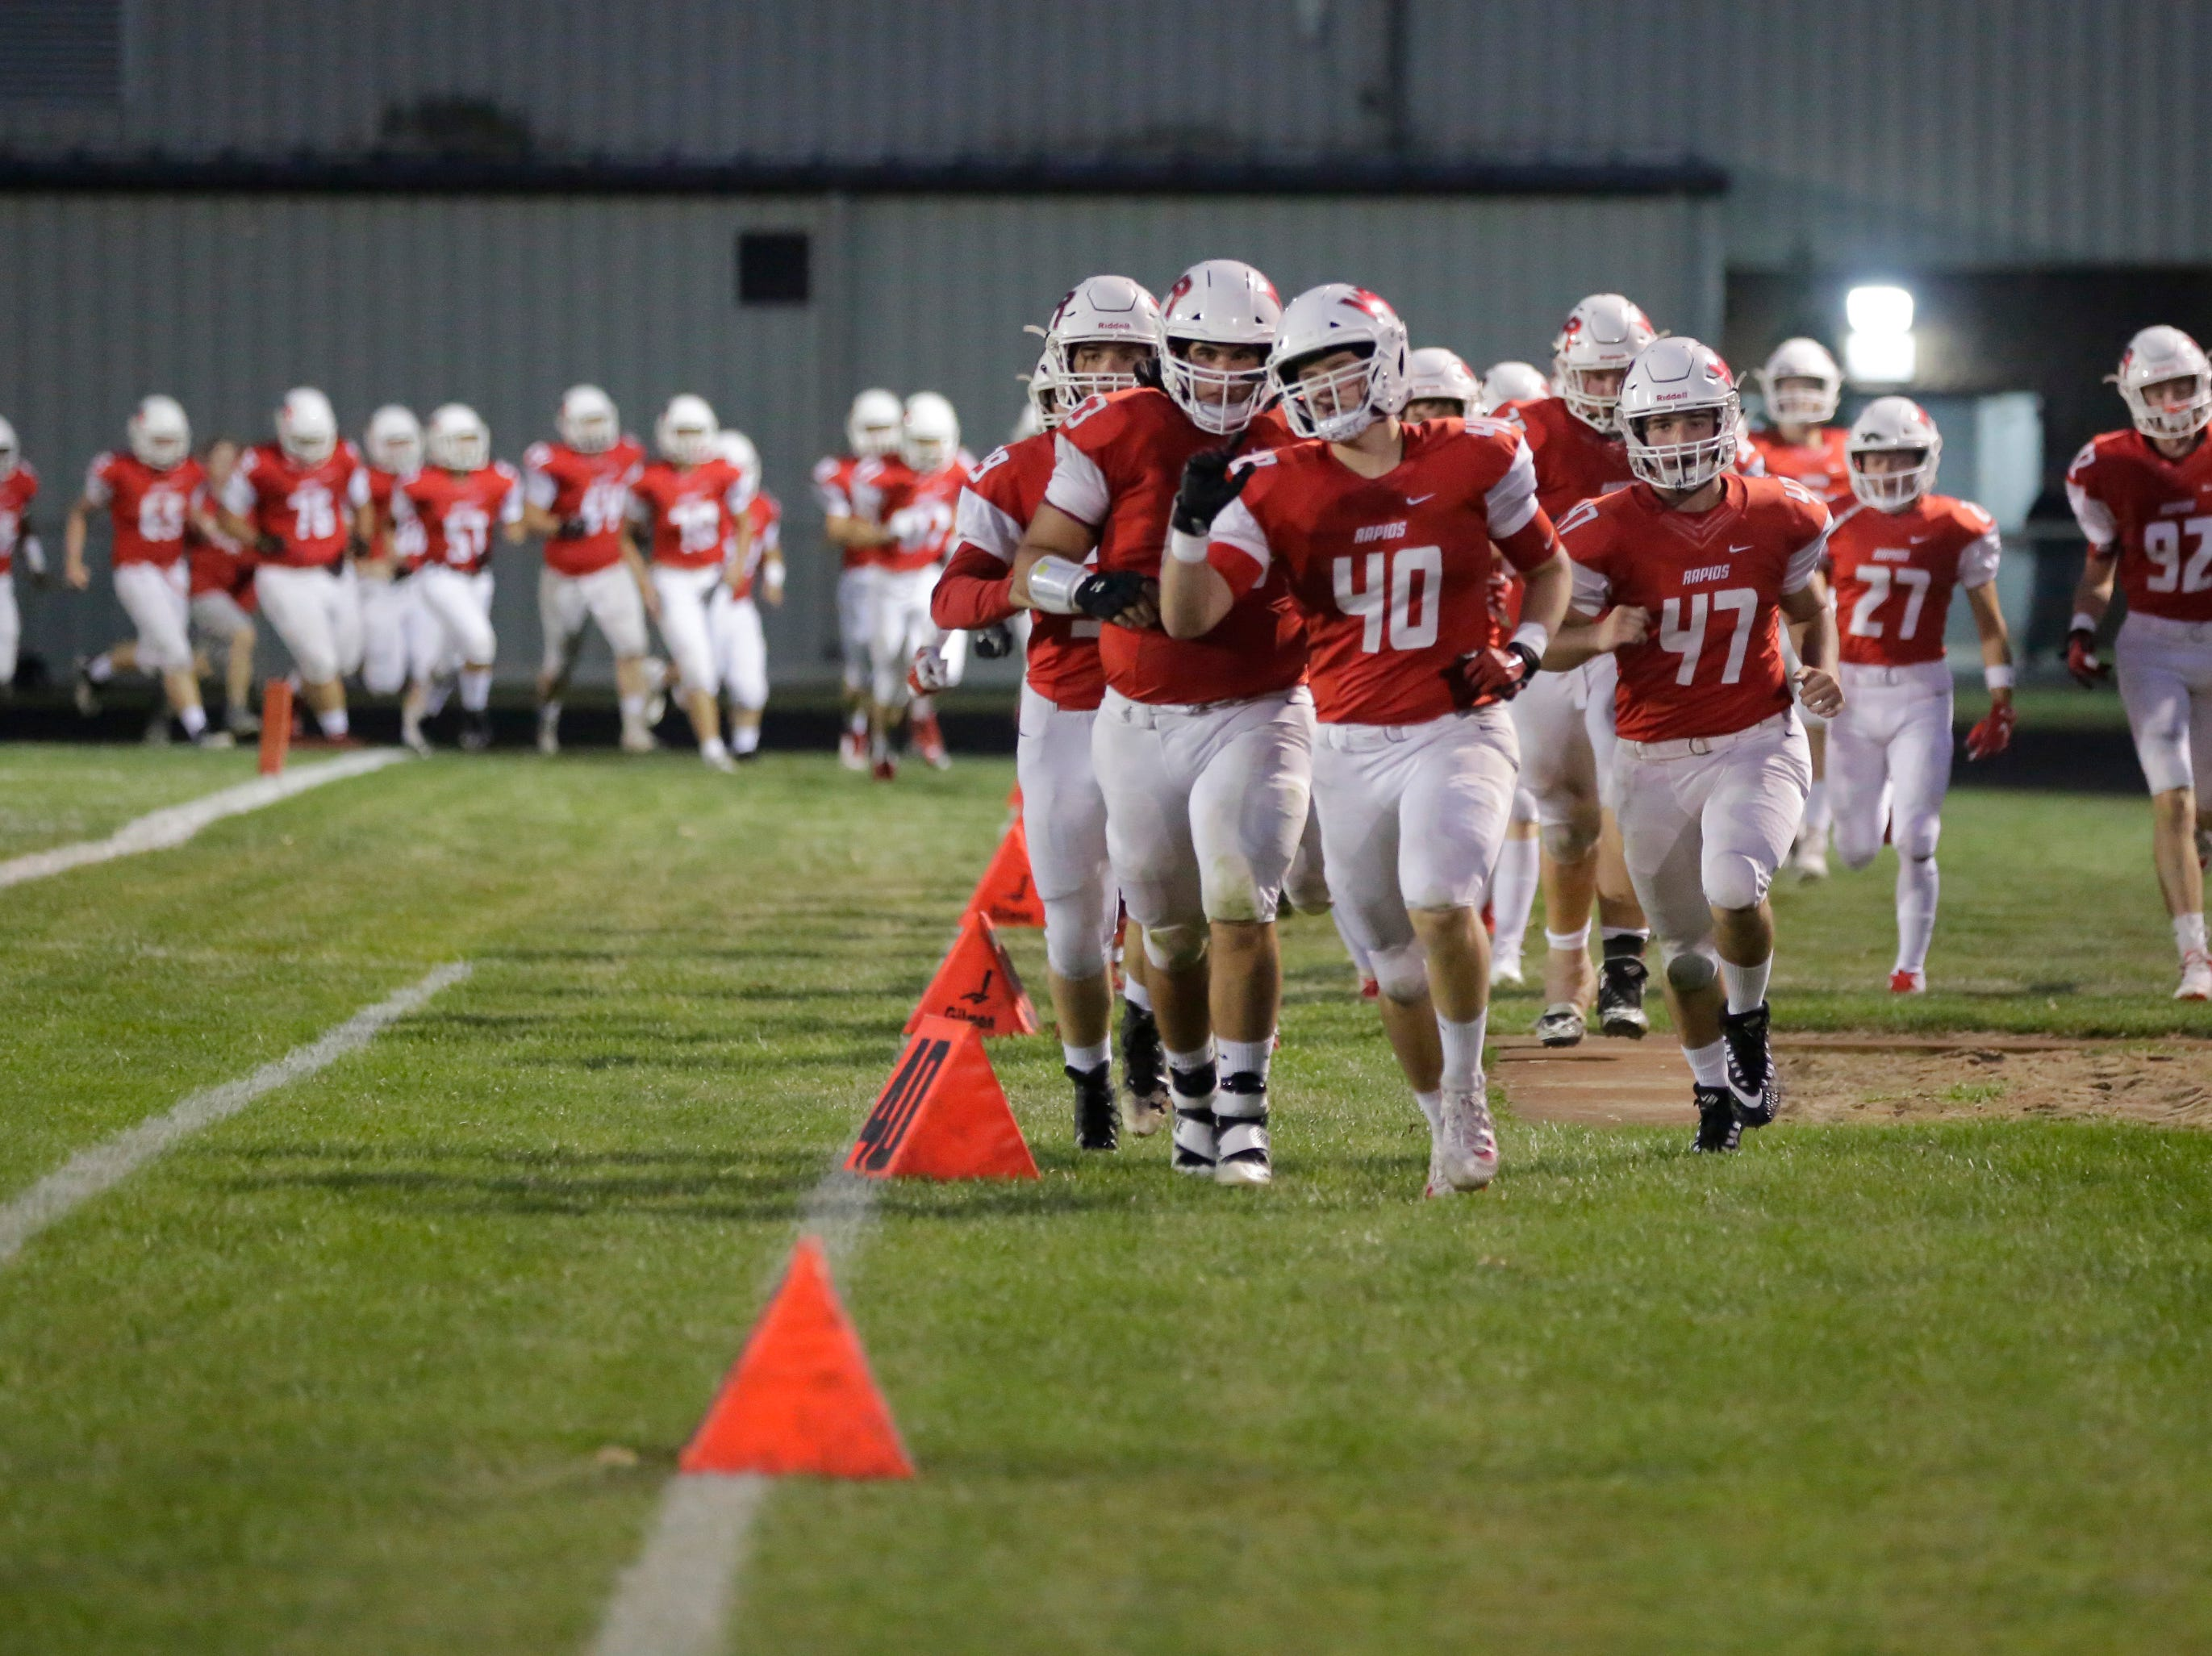 The Wisconsin Rapids football team returns to the field after half time during a game between Wisconsin Rapids and Kimberly at Wisconsin Rapids Lincoln High School Thursday, August 23, 2018.